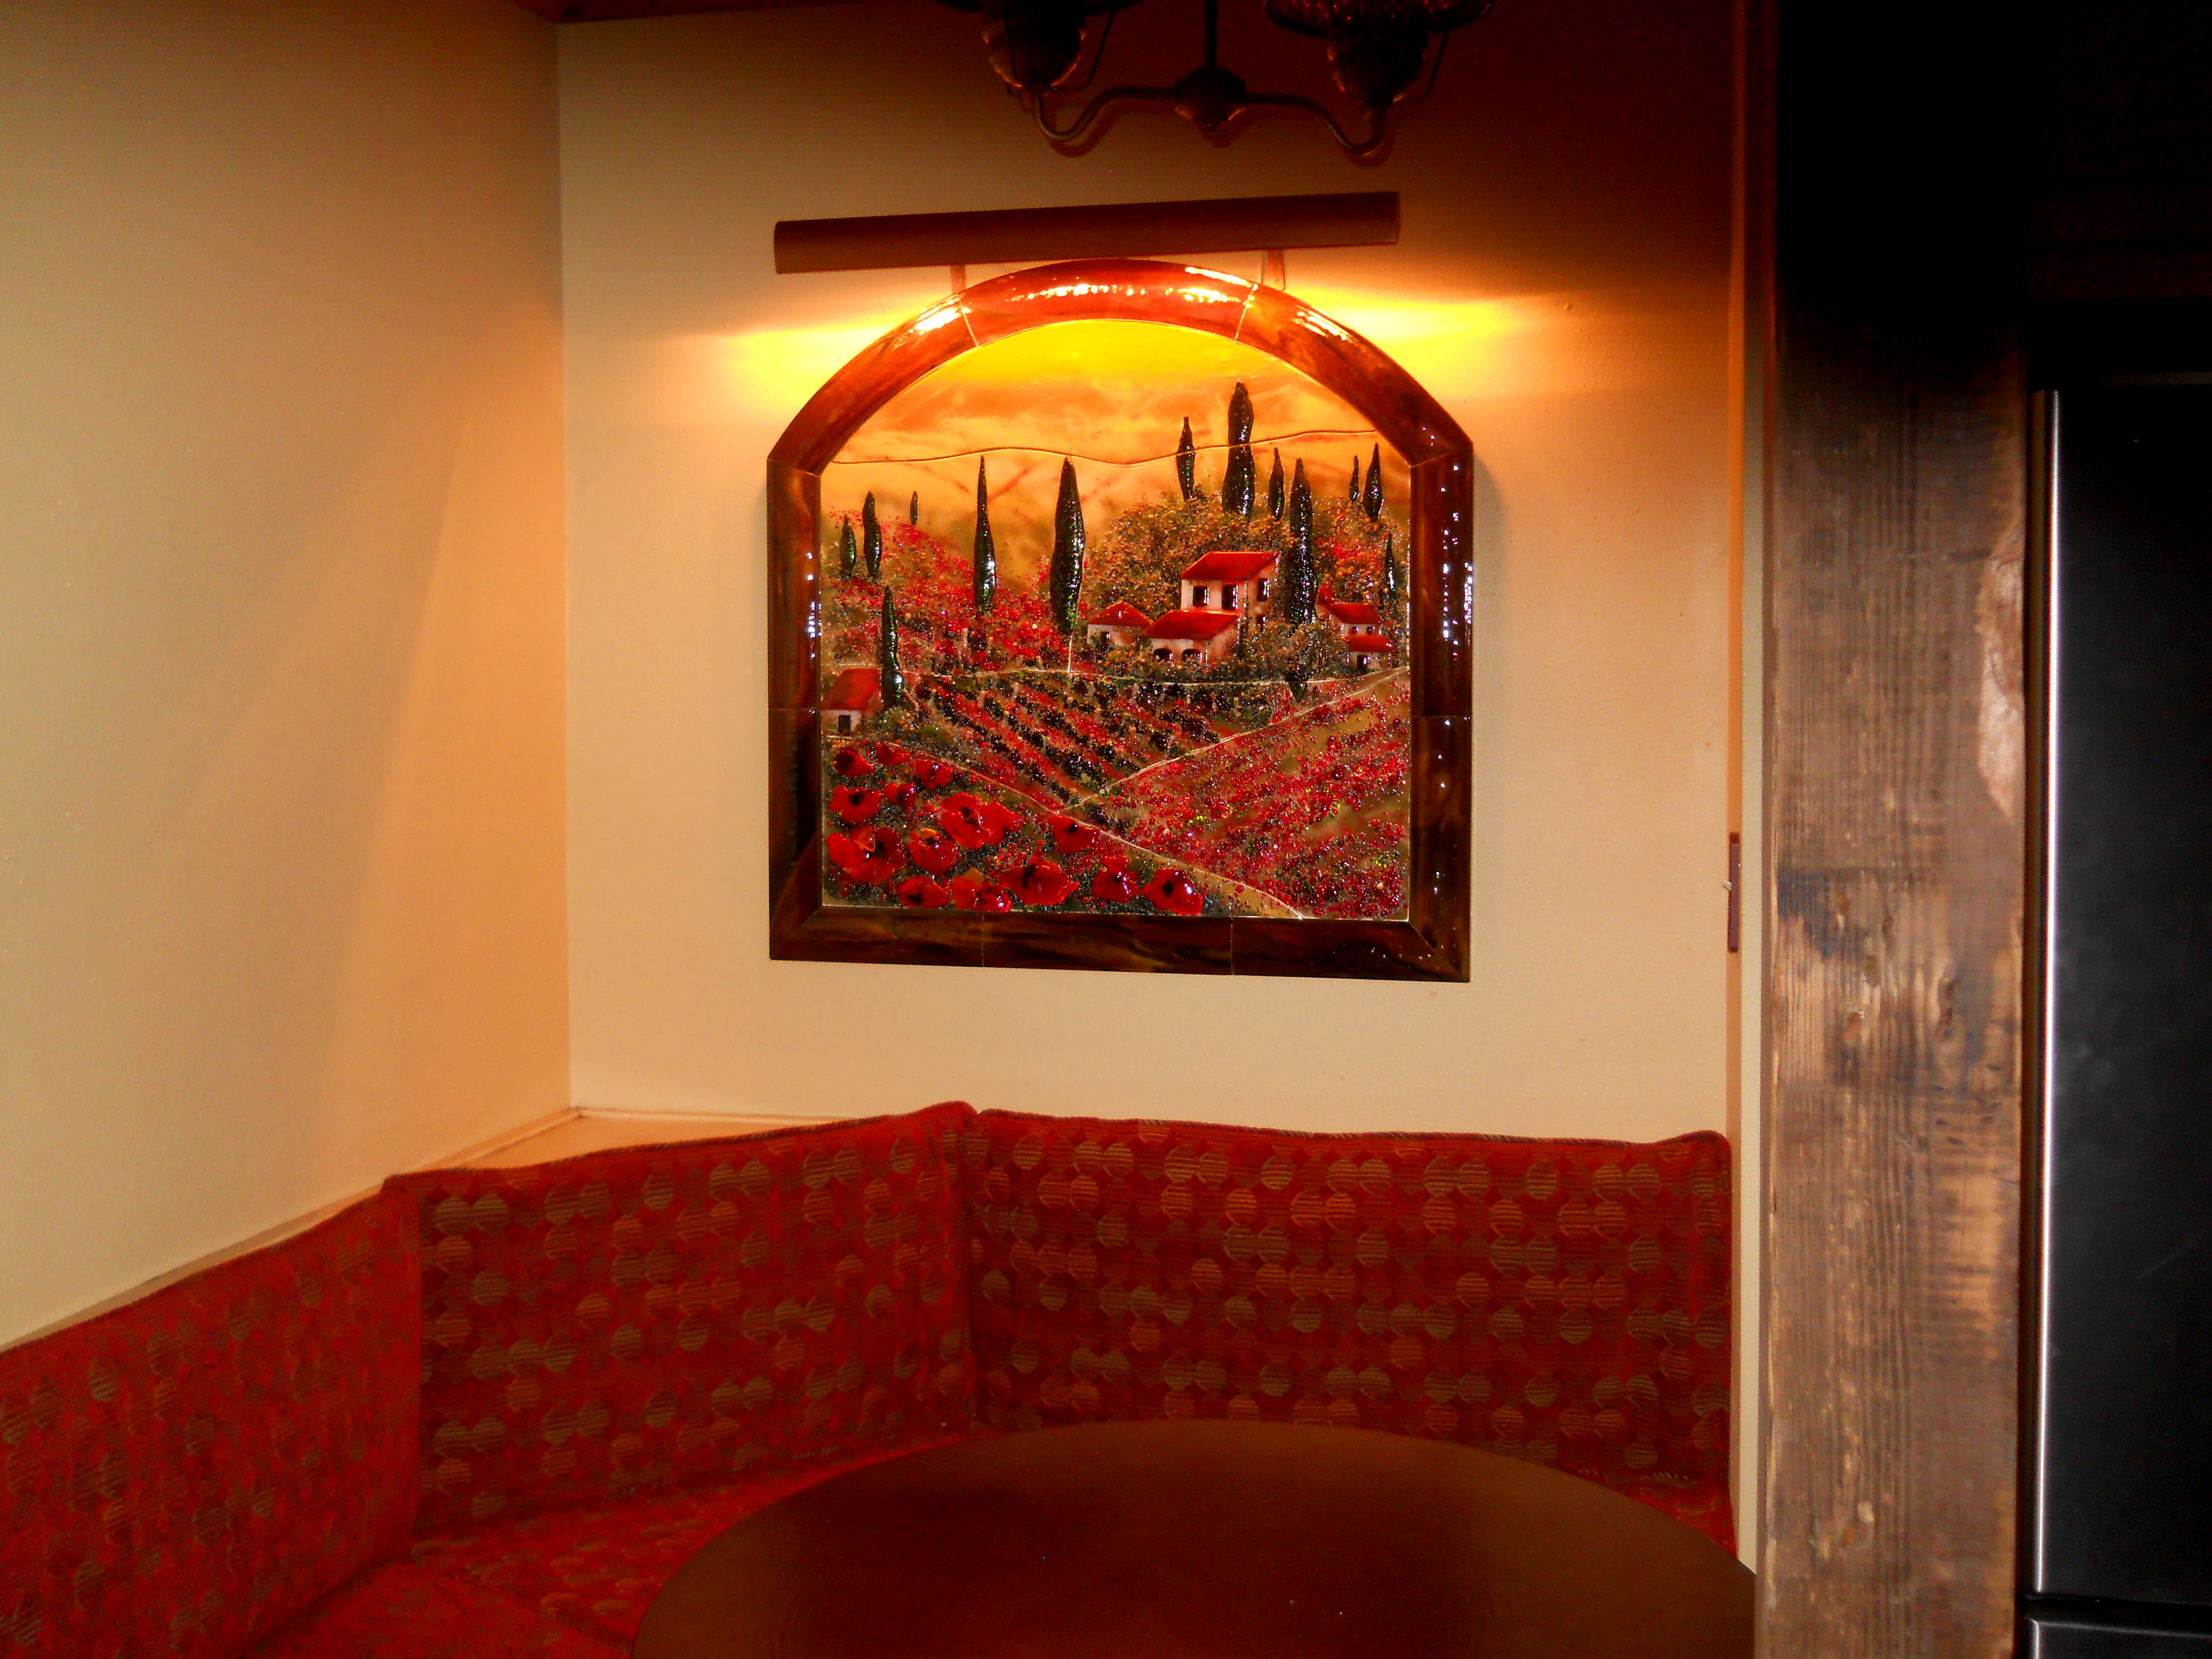 Fused Glass Wall Mural In Tuscan Theme With Poppies Designer Glass